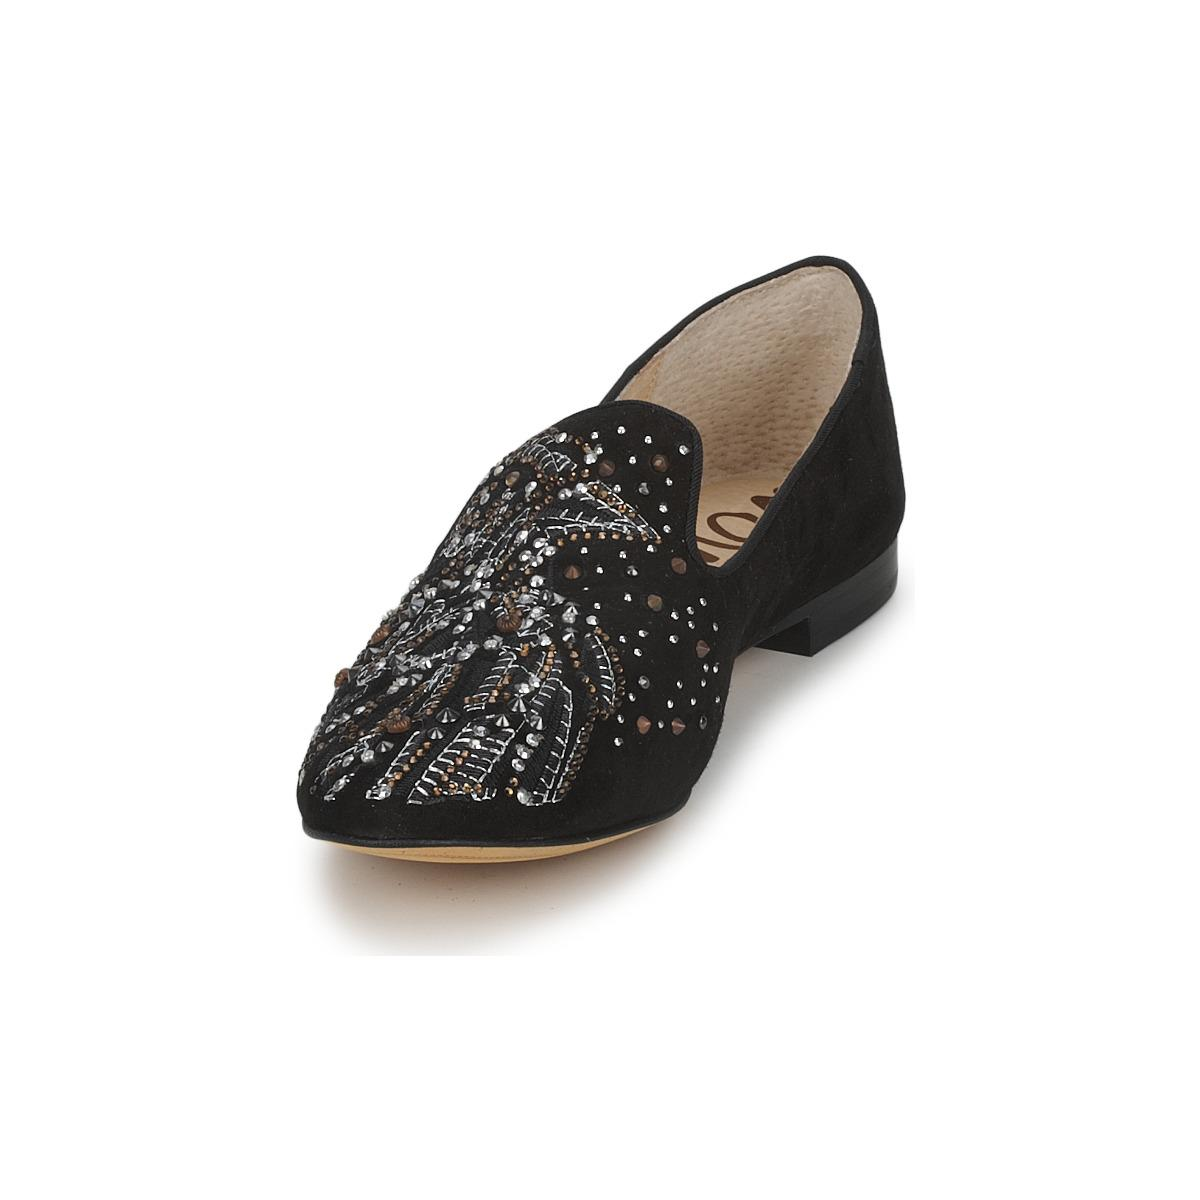 Sam Edelman AVALON women's Shoes (Pumps / Ballerinas) in Clearance New Styles Outlet Cheap Prices Cool Discount 100% Original n8NZ4T5hO